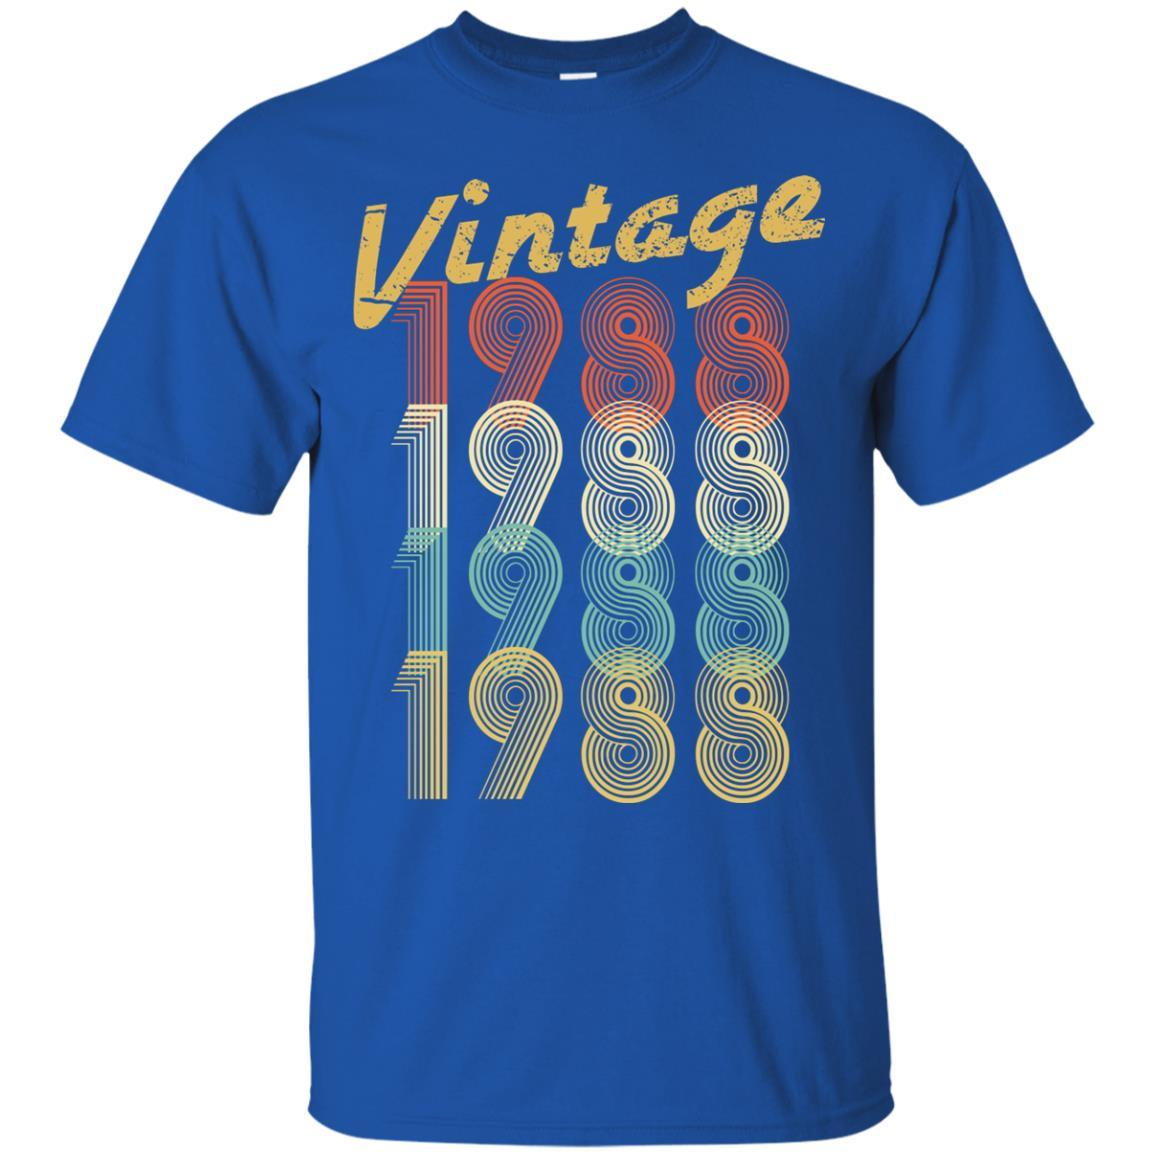 1988 Vintage Funny 30th Birthday Gift Shirt For Him Or Her Men